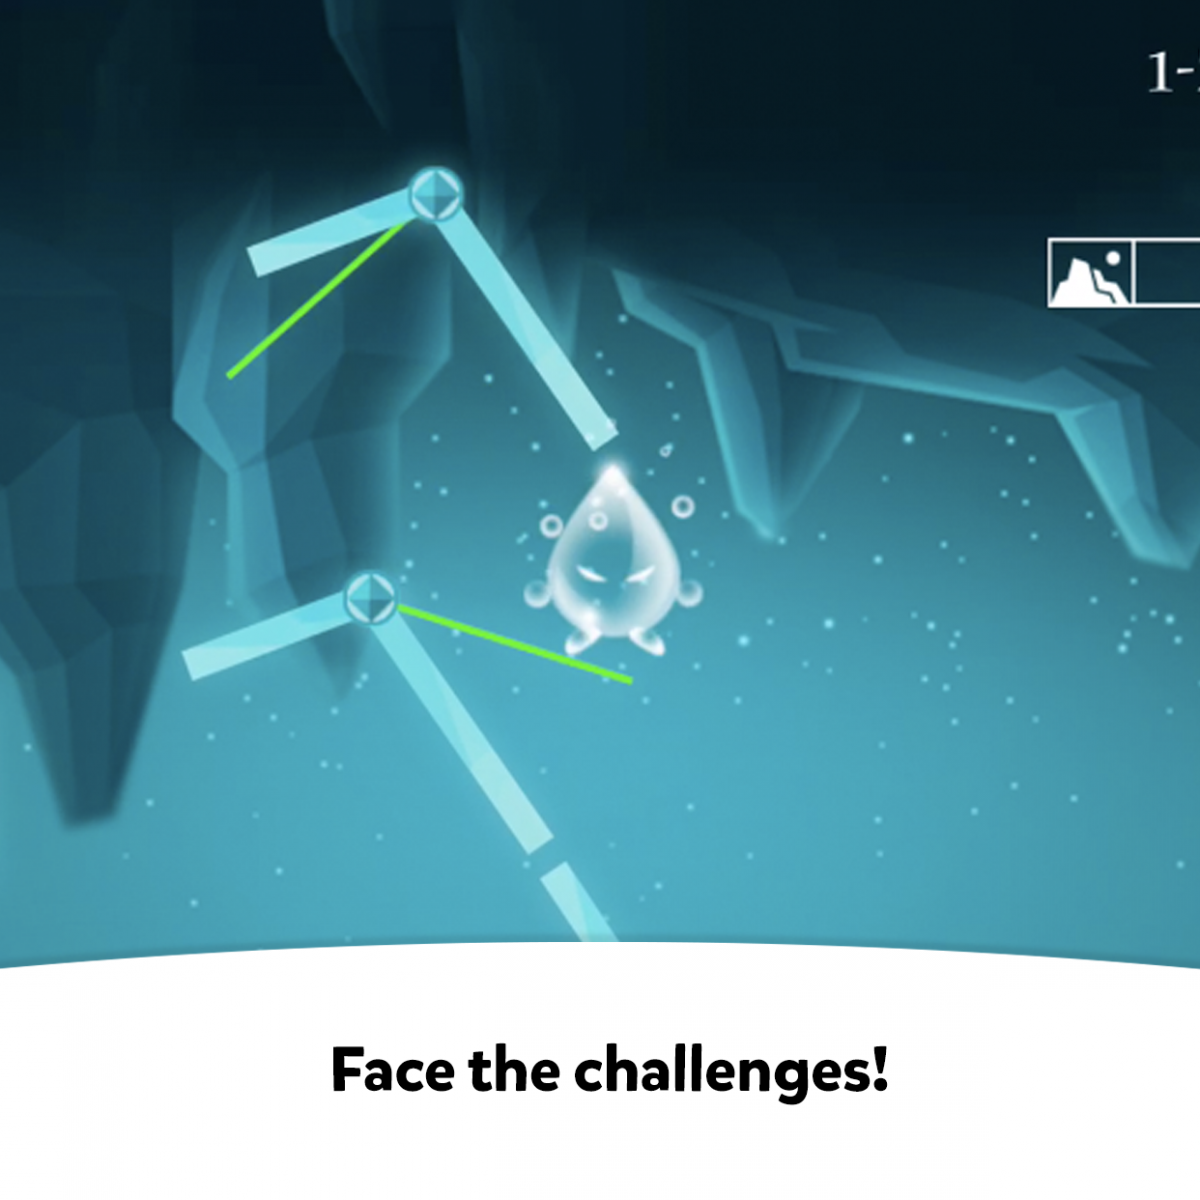 SKIDOS - Face the challenges!